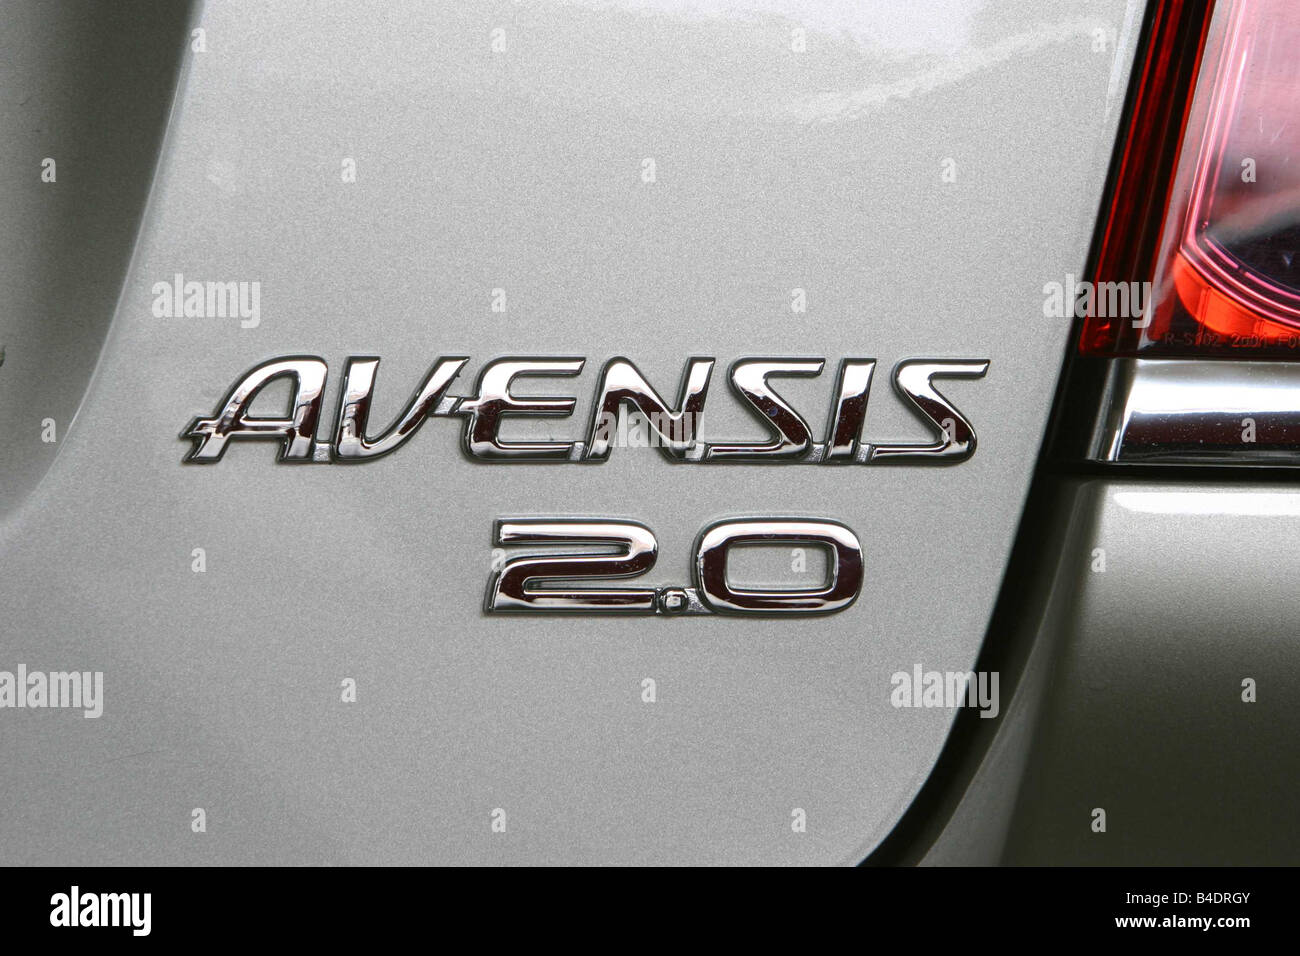 Car, Toyota Avensis, model year 2003-, Limousine, medium class, silver, Detailed view, Model designation - Stock Image